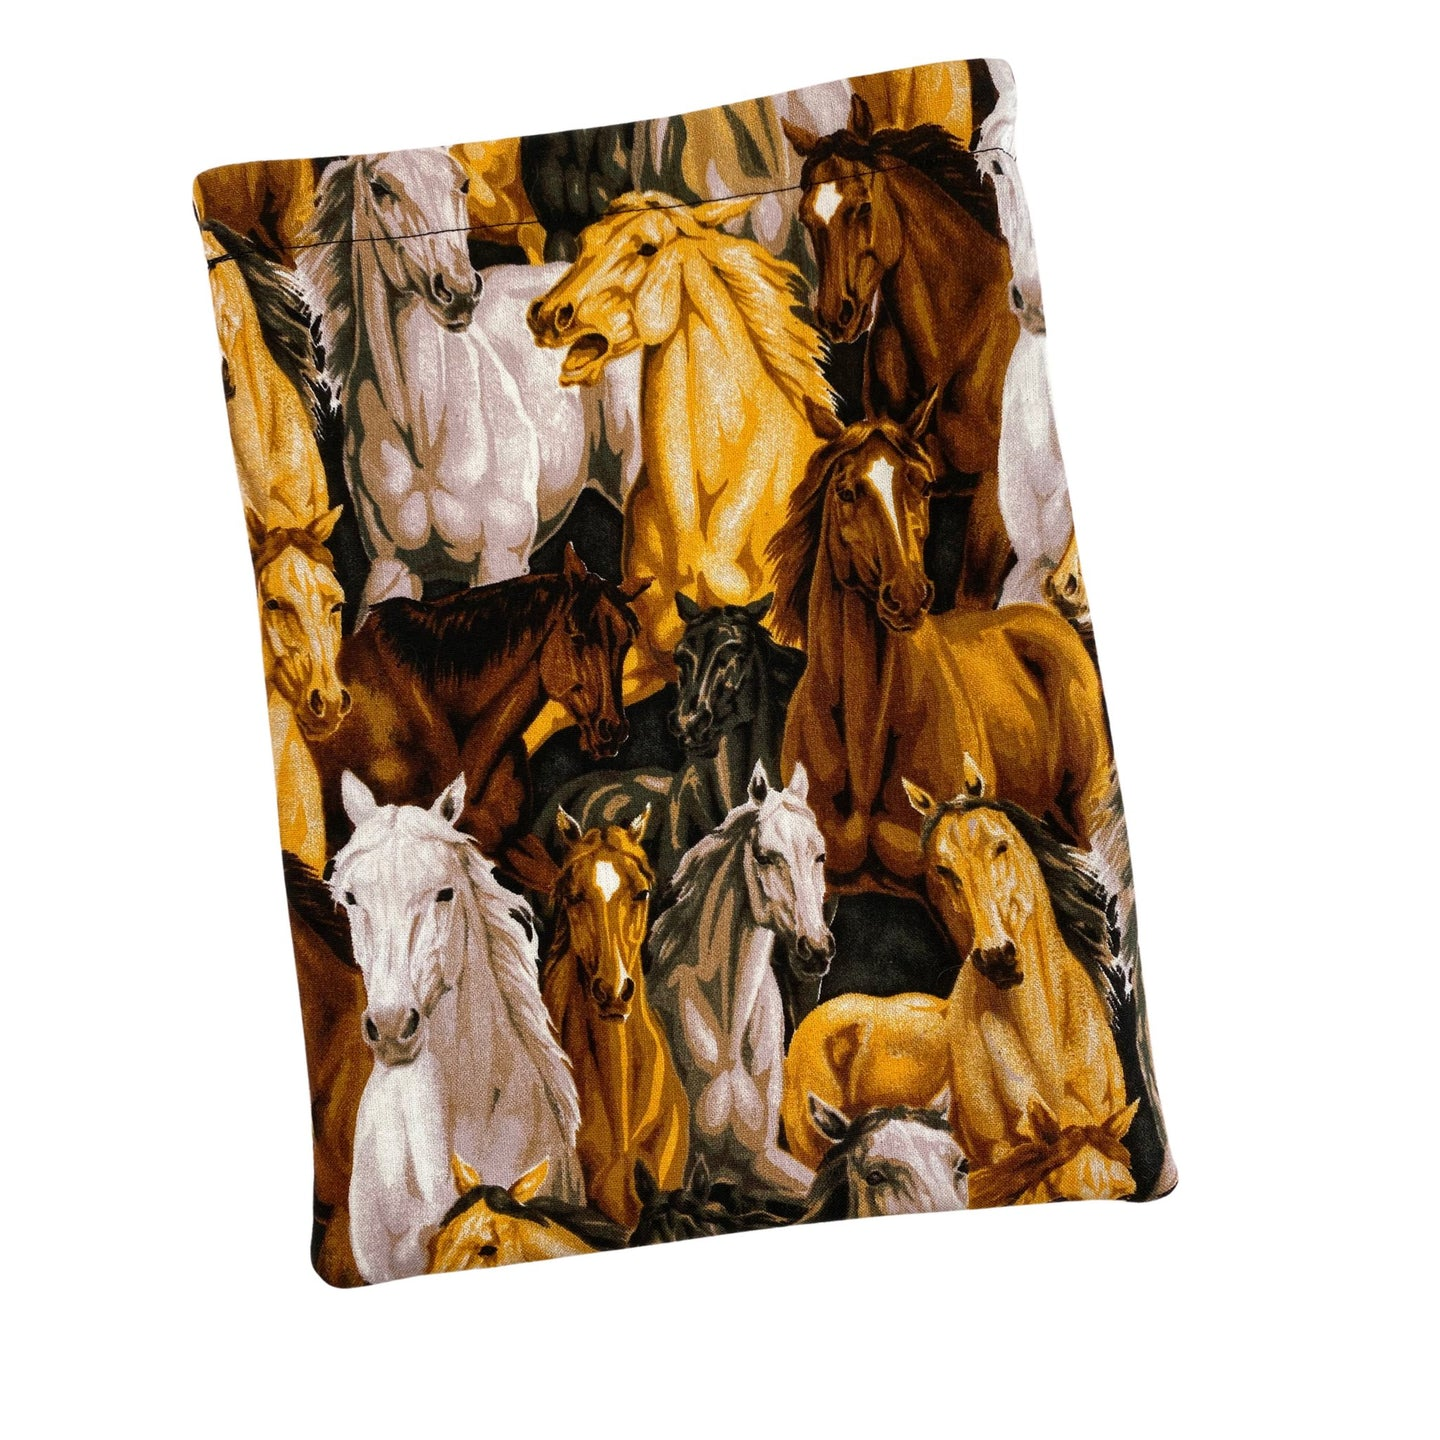 All Over Horses Padded Book Sleeve